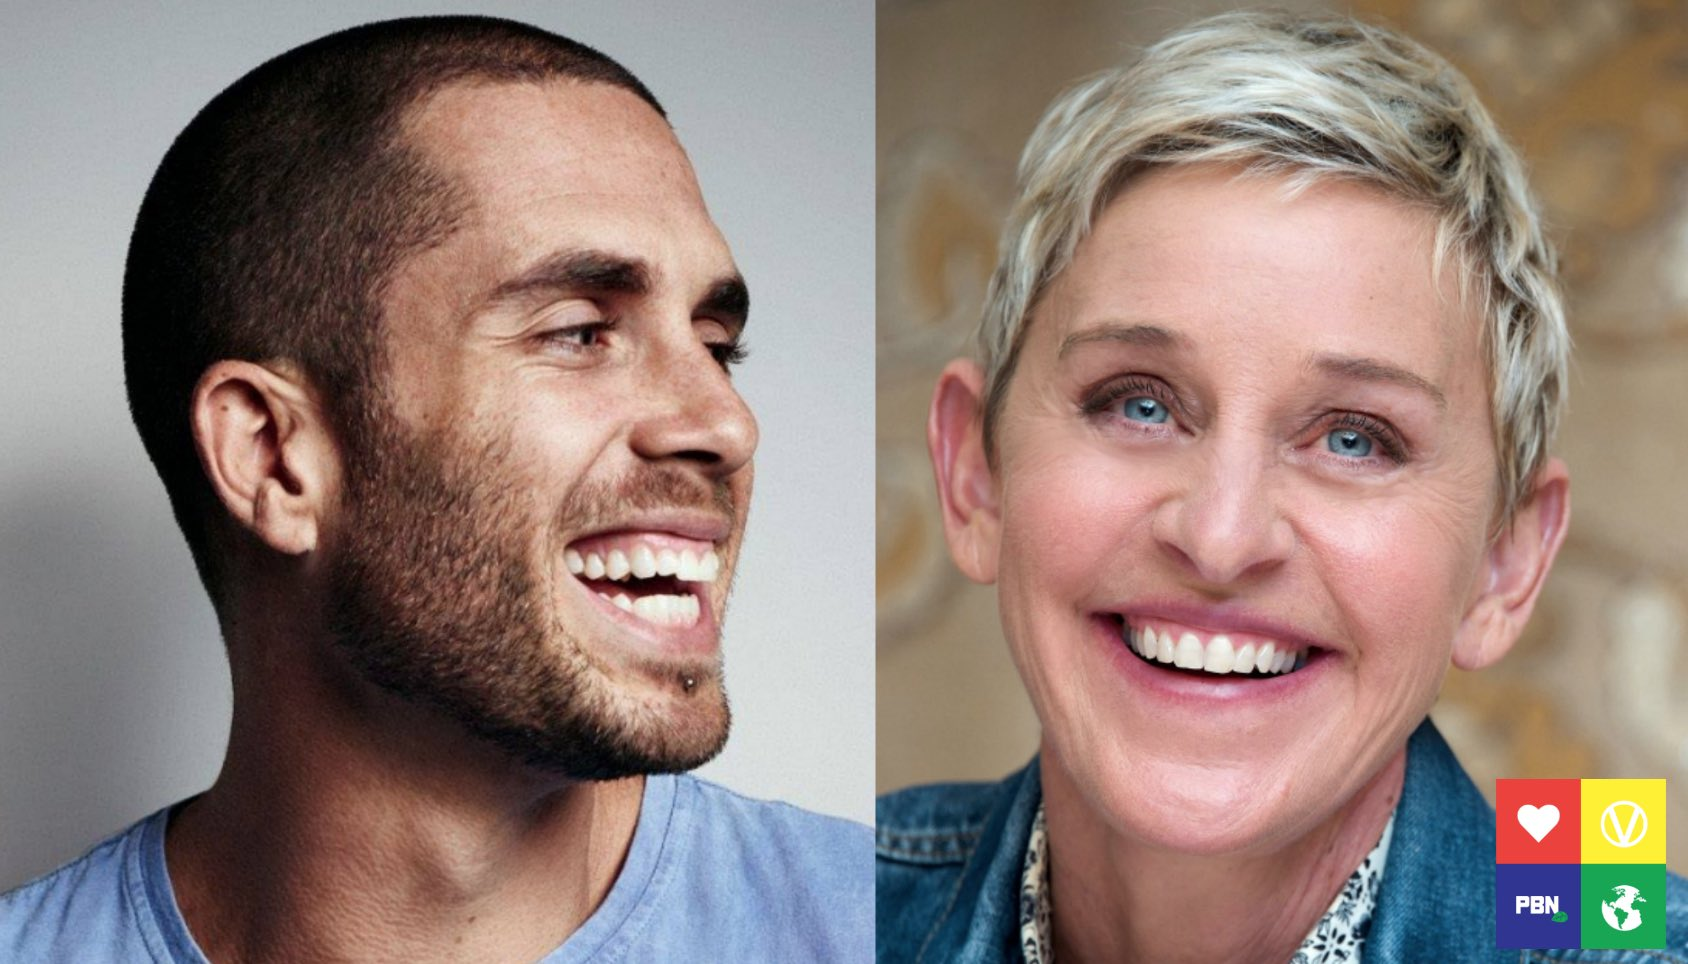 James Aspey and Ellen Degeneres